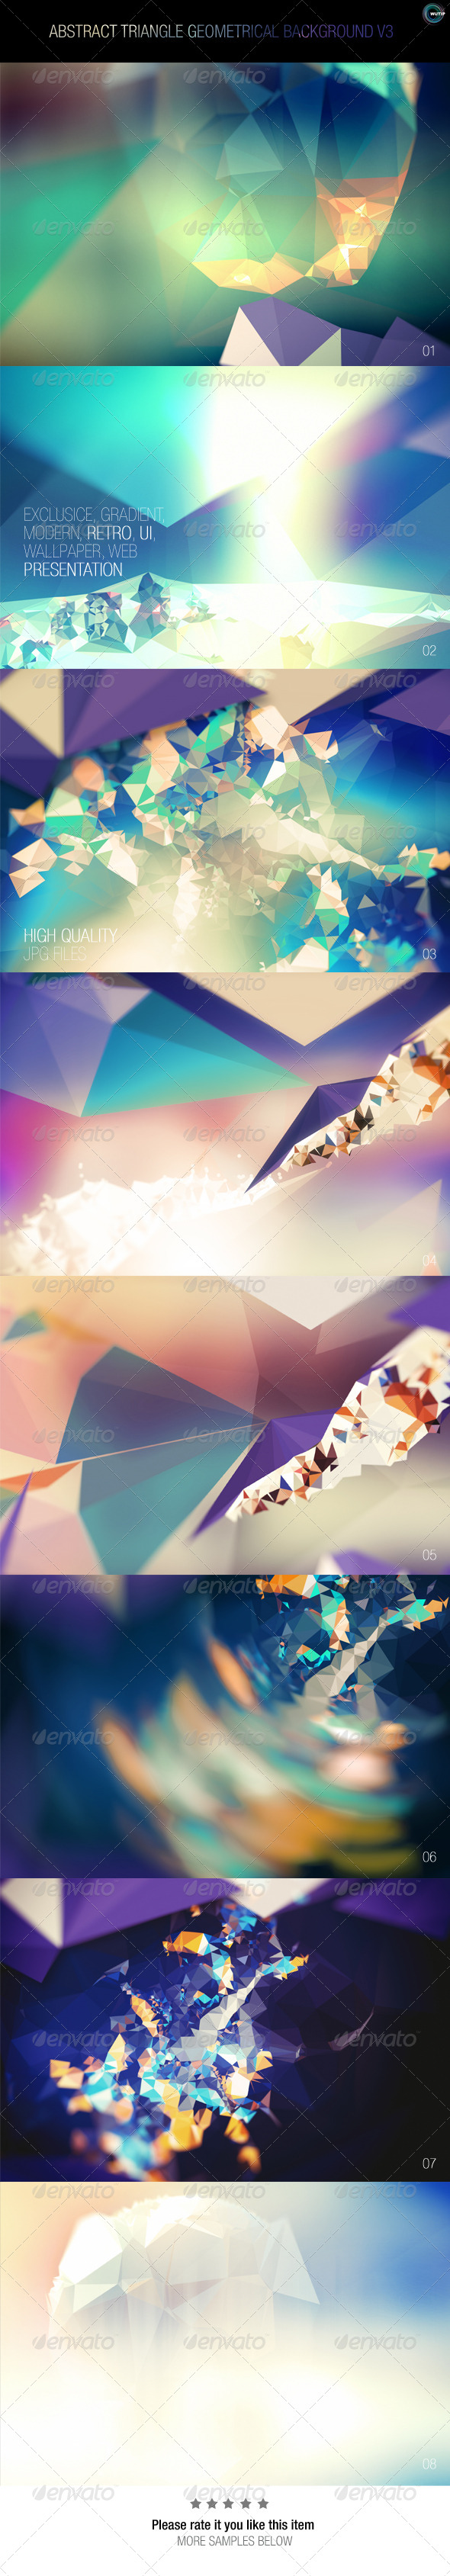 Abstract Triangle Geometrical Background V3